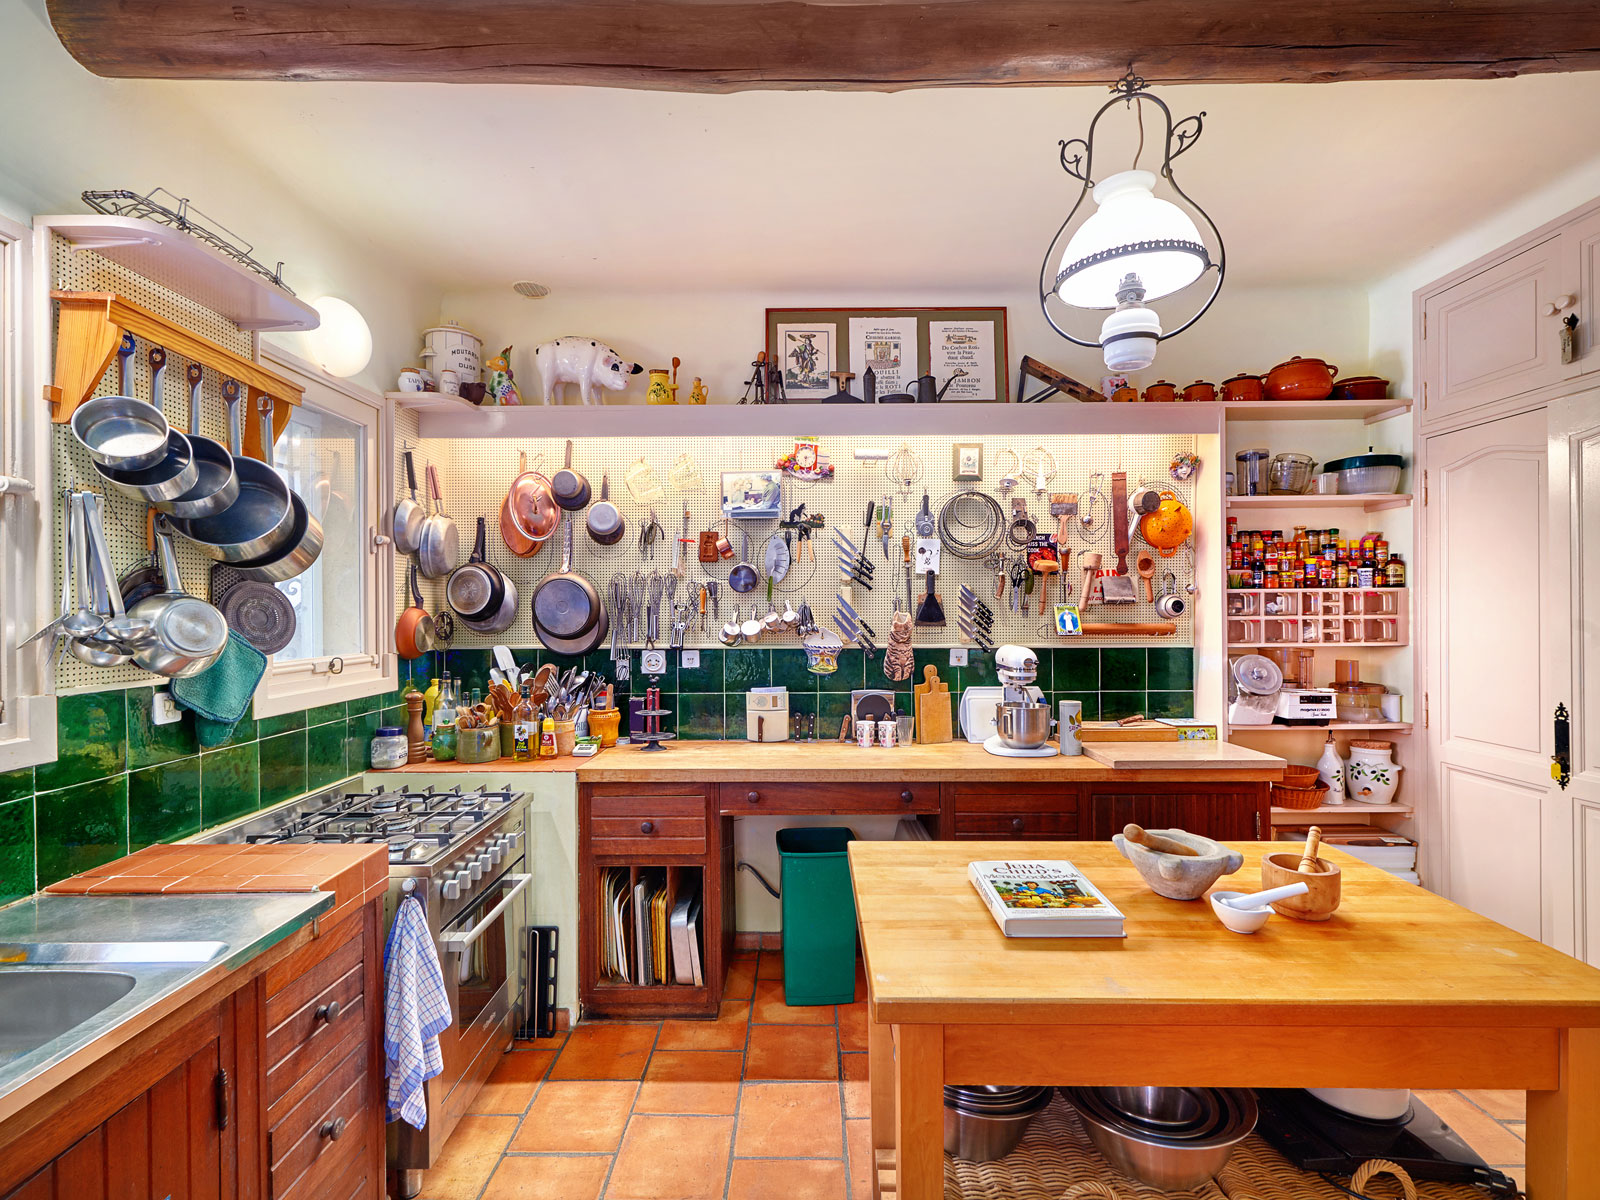 The Cooking School at Julia Child's Summer Home Is Everything You Were Hoping It Would Be